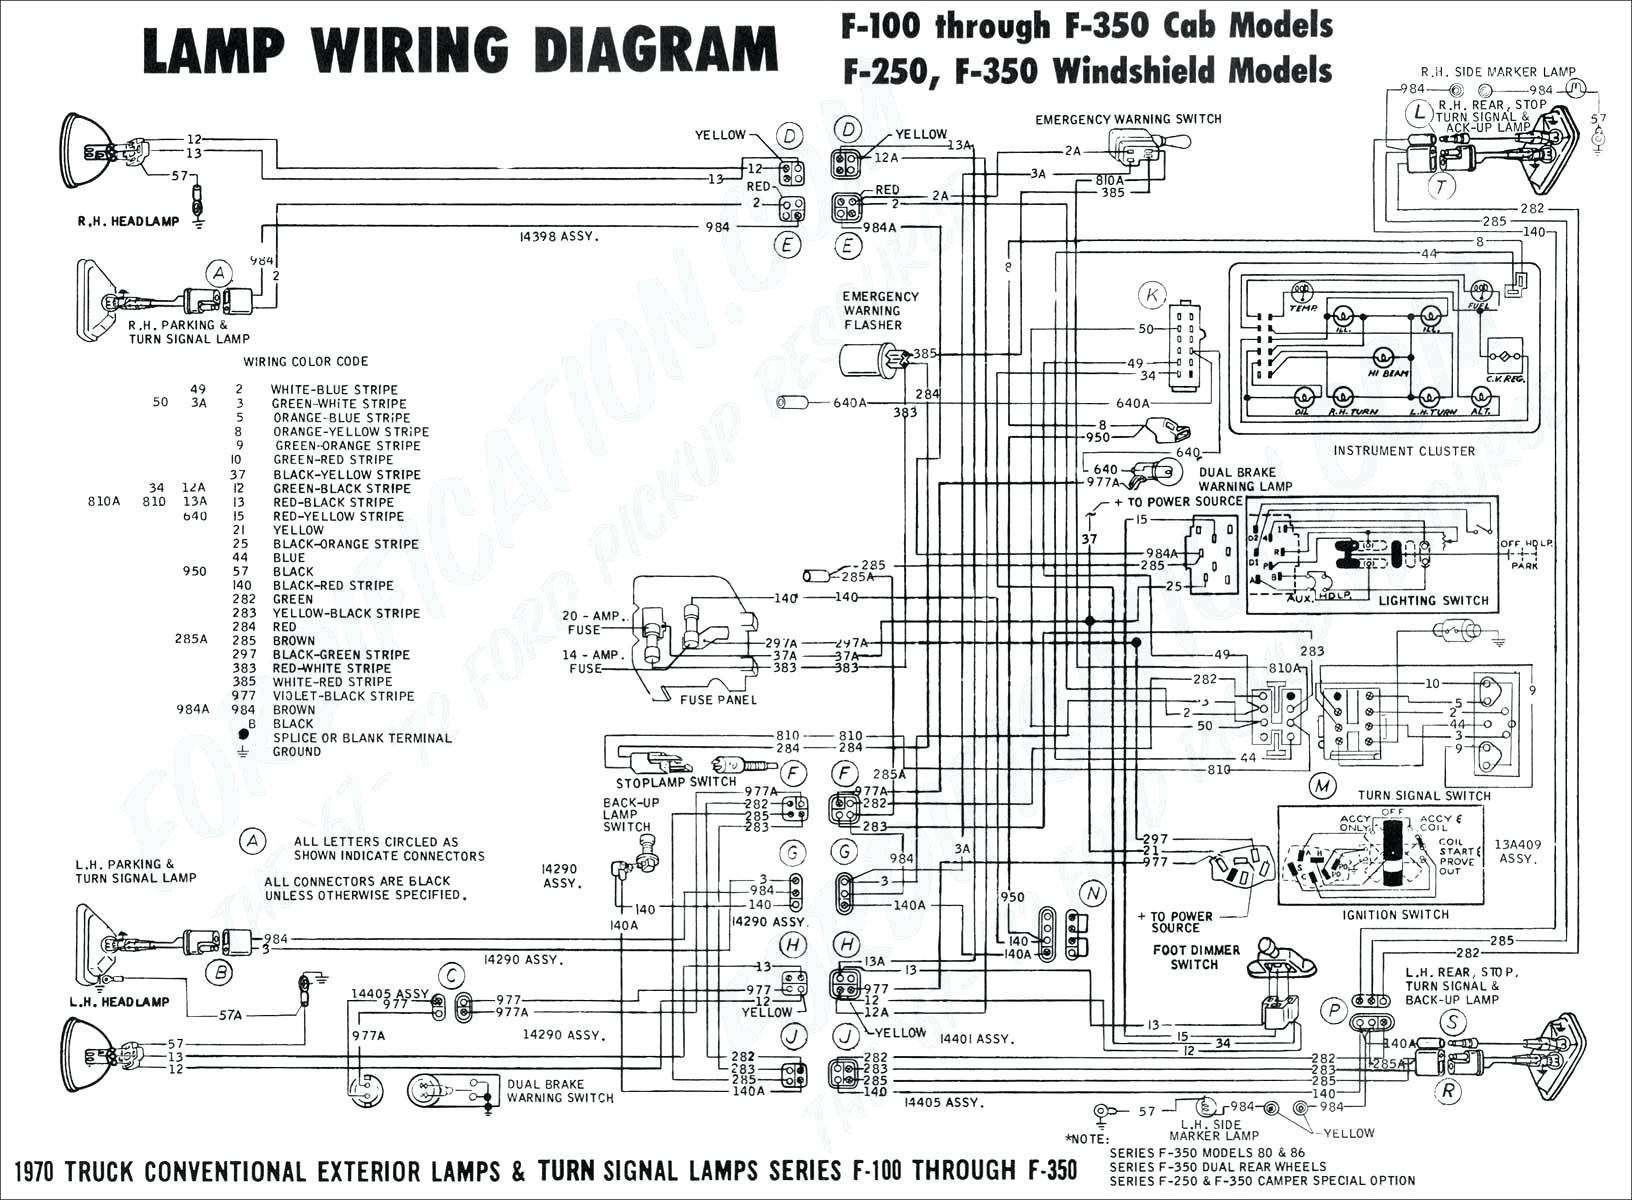 2005 Pt Cruiser Engine Diagram Chrysler Starter Wiring Wiring Diagrams • Of 2005 Pt Cruiser Engine Diagram 2005 Pt Cruiser Wiring Diagram Http Wwwfixya Cars T